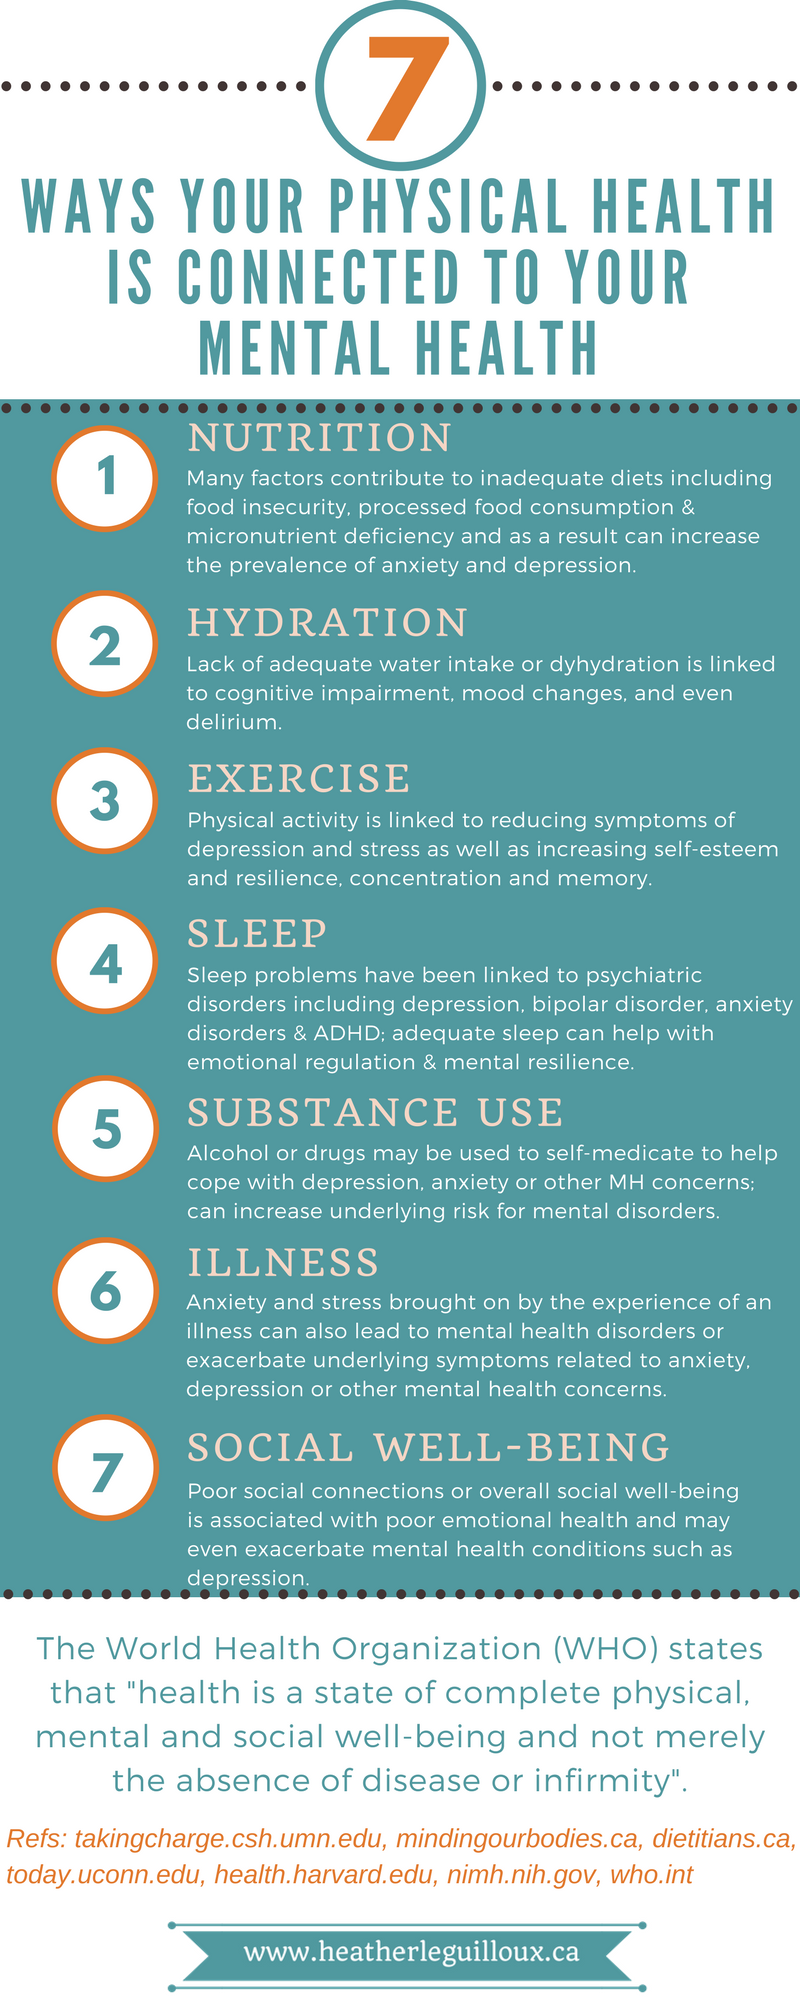 7 Ways Your Physical Health Is Connected To Your Mental Health